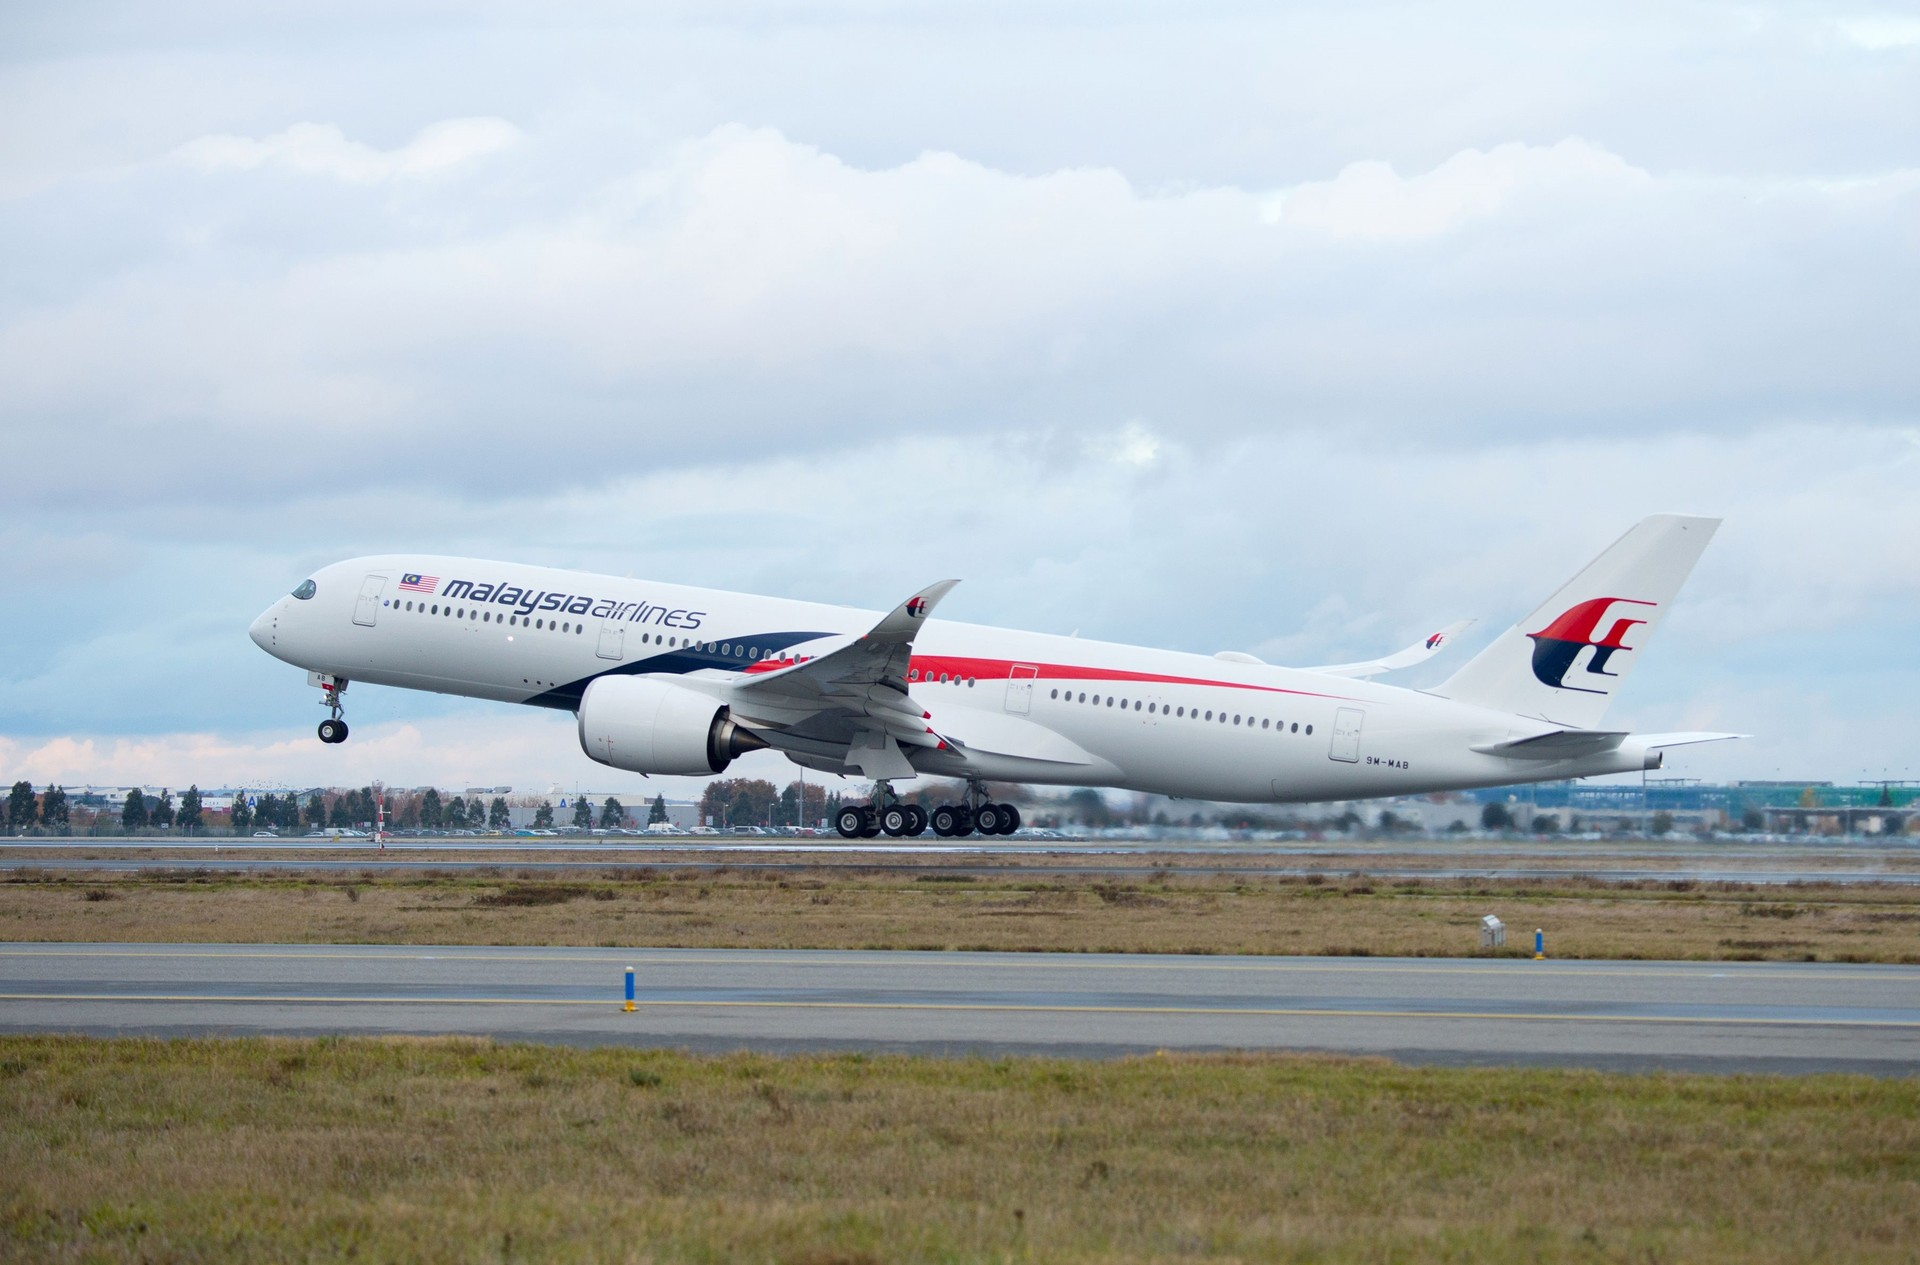 Flight check: Tokyo to Kuala Lumpur with Malaysia Airlines